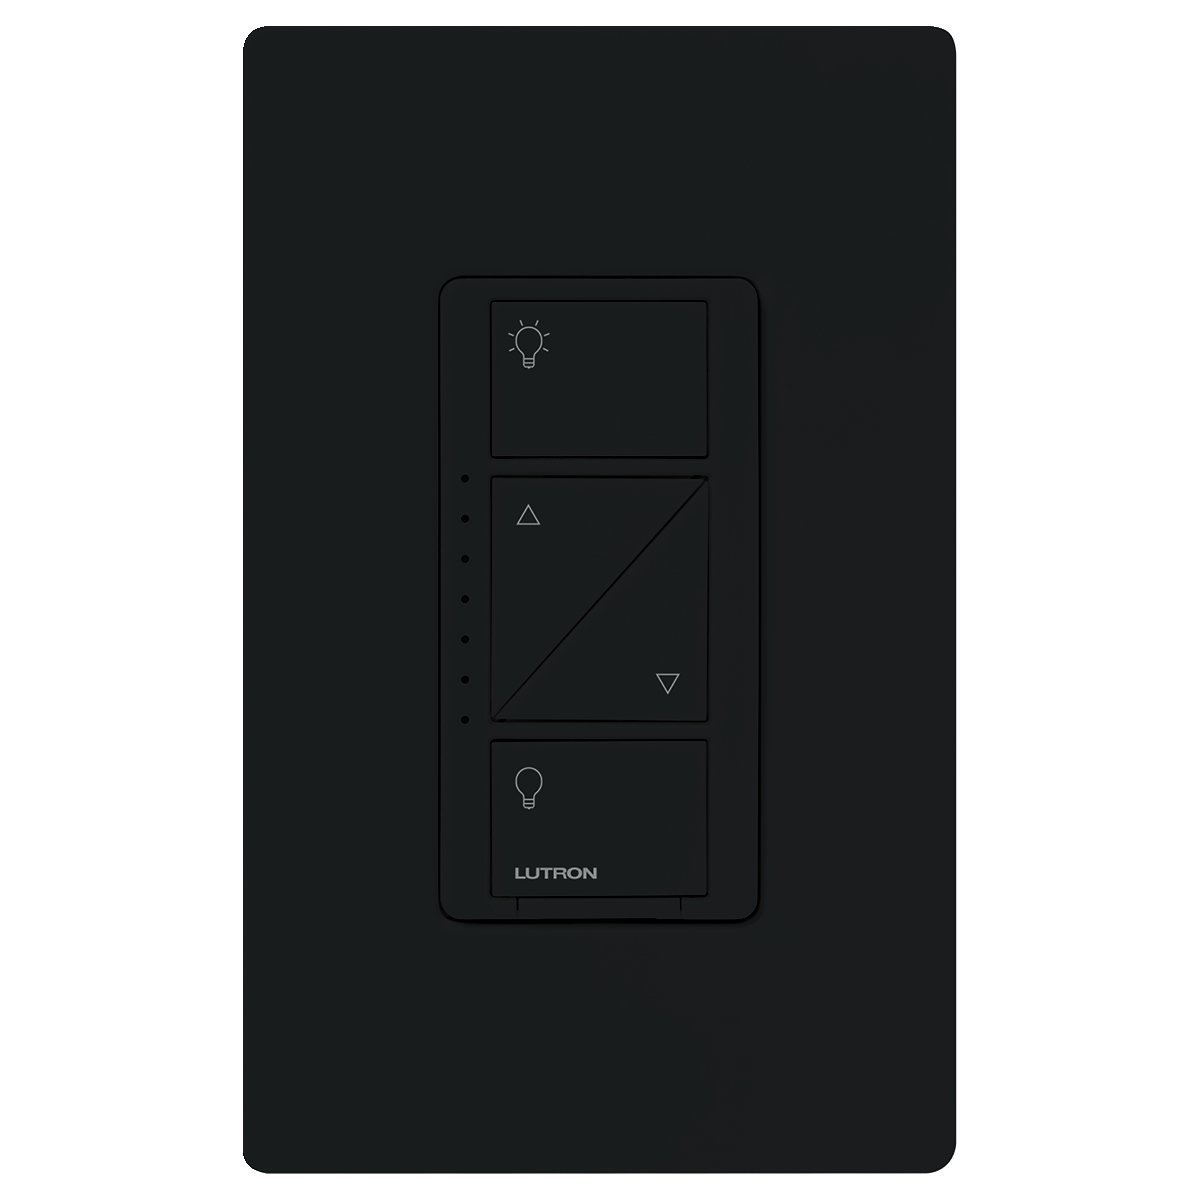 LUTRON SMART LIGHTING DIMMER SWITCH FOR WALL AND CEILING LIGHTS (PD-6WCL-BL) SK Customs Car ...